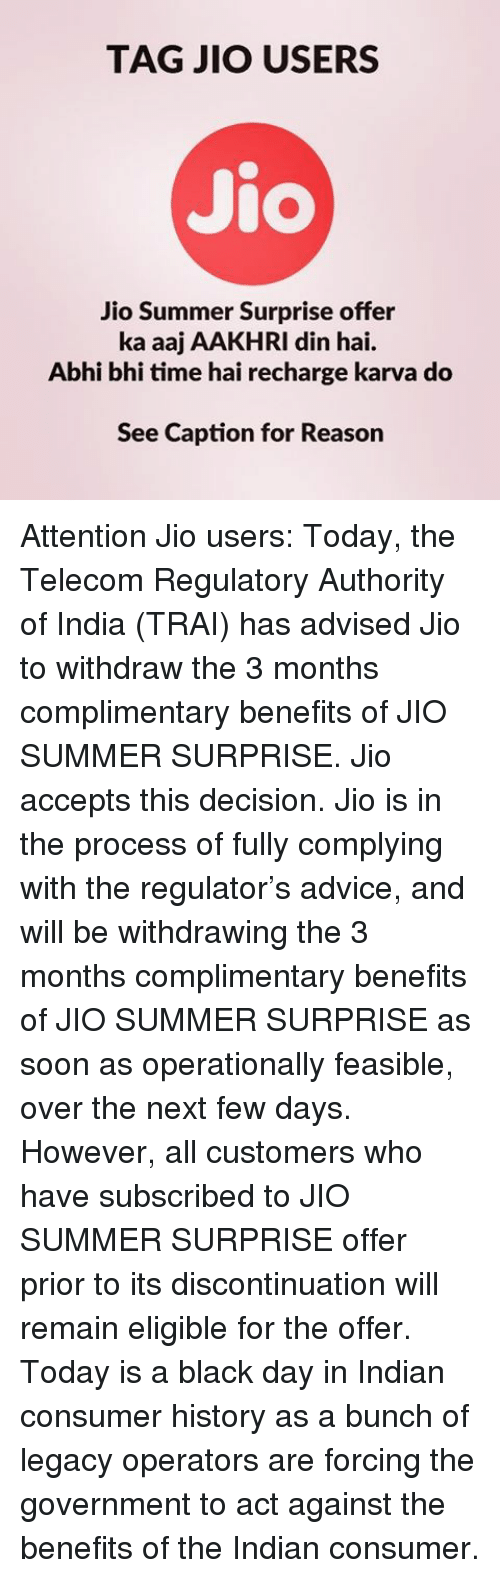 feasible: TAG JIO USERS  Jio  Jio Summer Surprise offer  ka aaj AAKHRI In hai.  Abhi bhi time hai recharge karva do  See Caption for Reason Attention Jio users: Today, the Telecom Regulatory Authority of India (TRAI) has advised Jio to withdraw the 3 months complimentary benefits of JIO SUMMER SURPRISE. Jio accepts this decision. Jio is in the process of fully complying with the regulator's advice, and will be withdrawing the 3 months complimentary benefits of JIO SUMMER SURPRISE as soon as operationally feasible, over the next few days. However, all customers who have subscribed to JIO SUMMER SURPRISE offer prior to its discontinuation will remain eligible for the offer. Today is a black day in Indian consumer history as a bunch of legacy operators are forcing the government to act against the benefits of the Indian consumer.